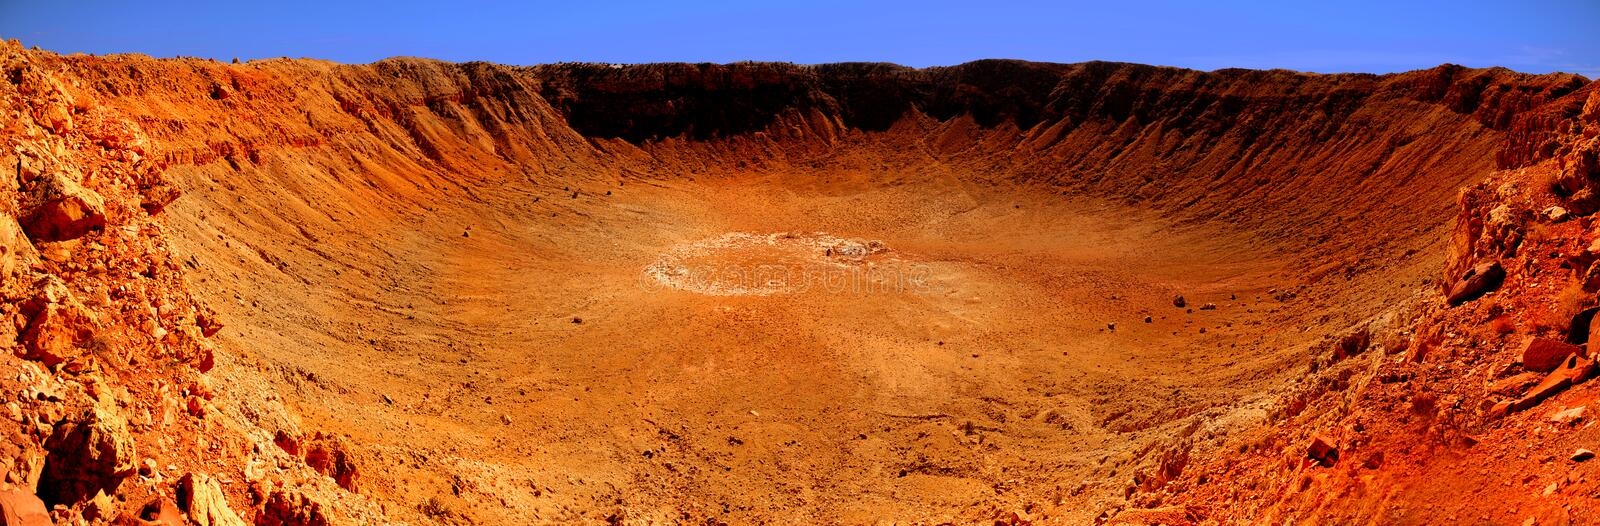 Download Meteor Crater Stock Images - Image: 11614824